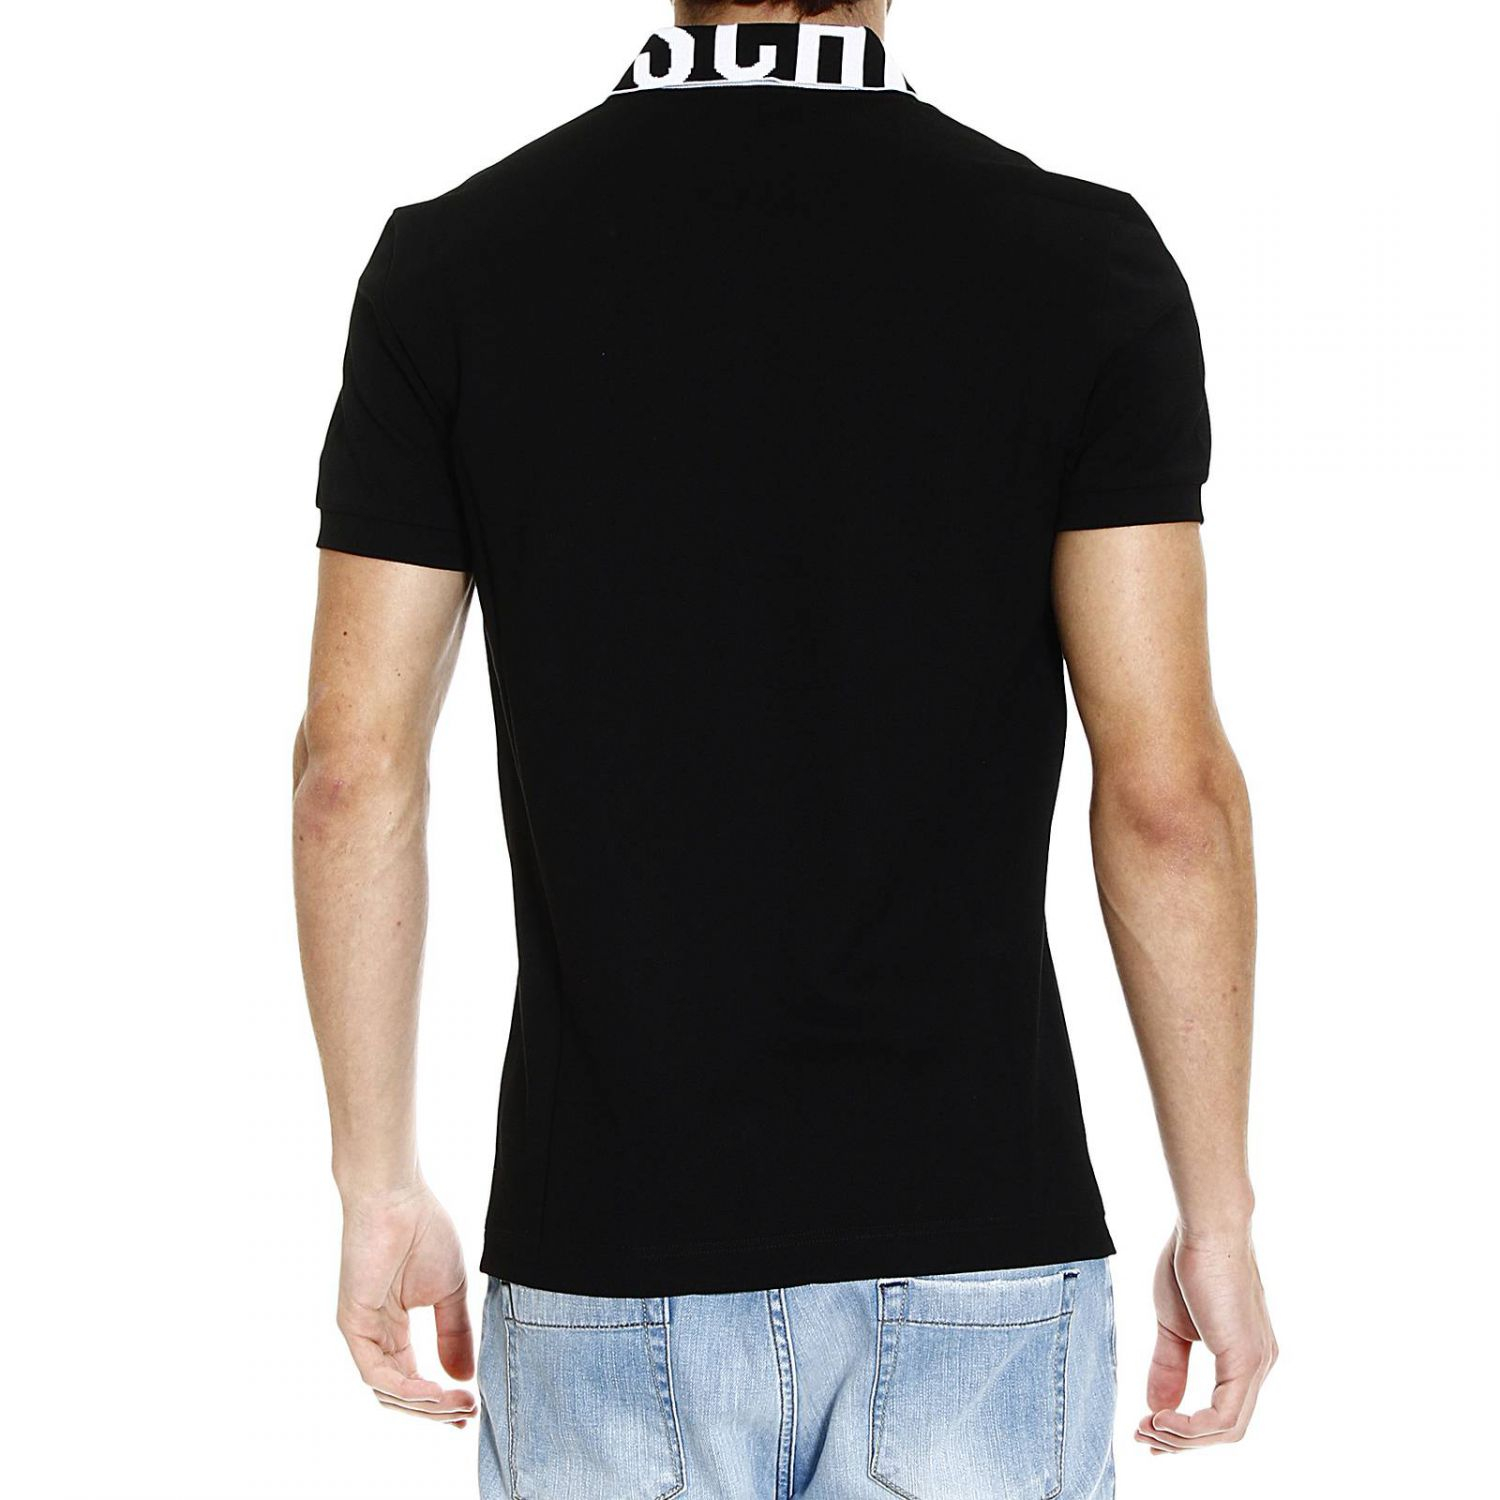 lyst moschino t shirt in black for men. Black Bedroom Furniture Sets. Home Design Ideas